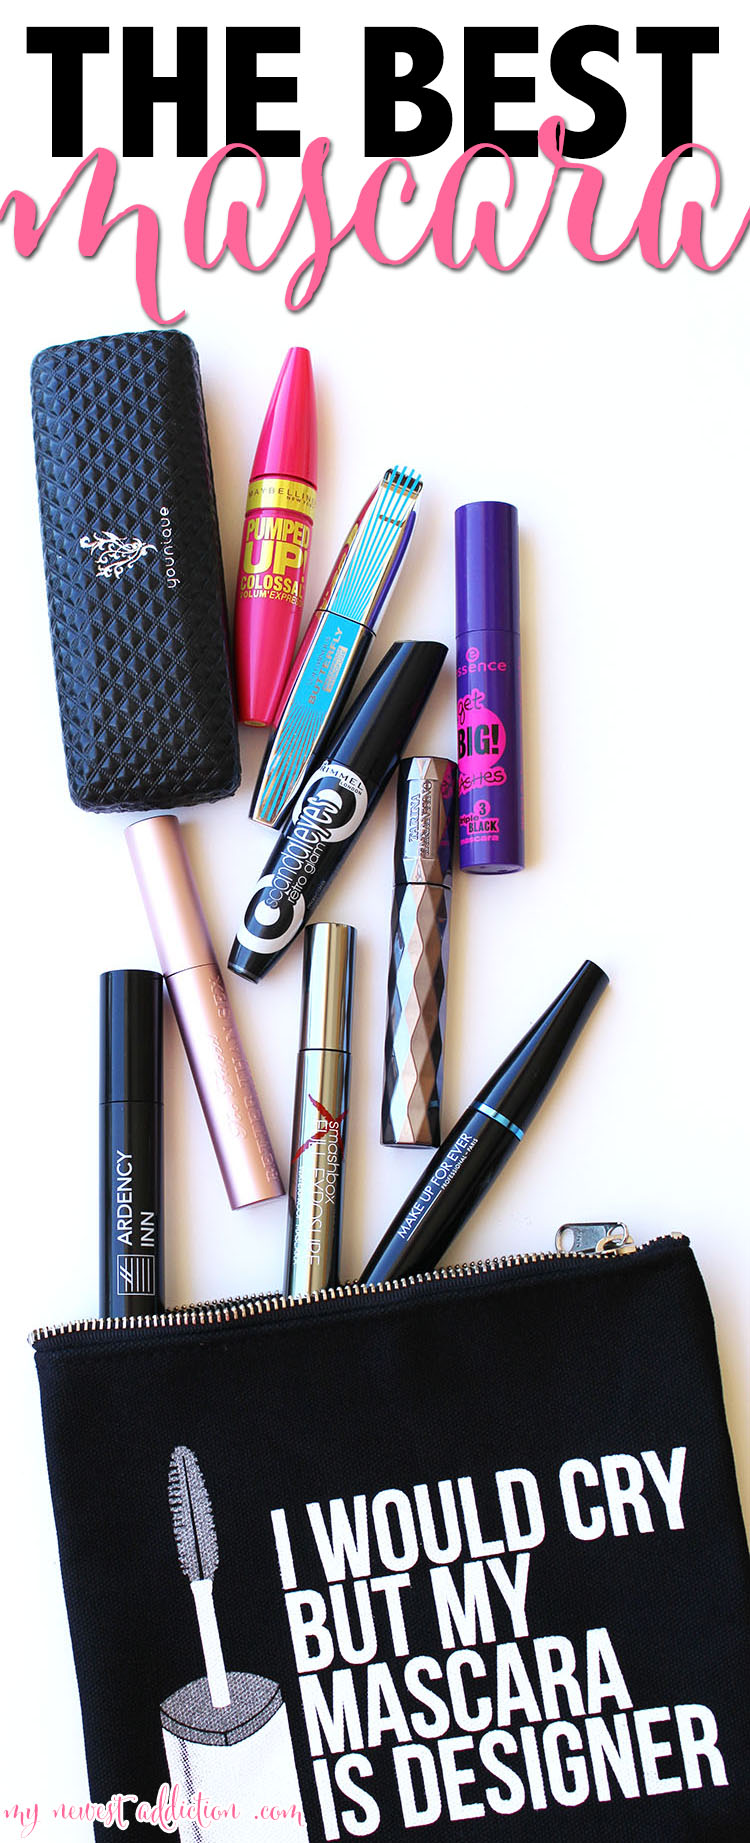 the best mascara bag